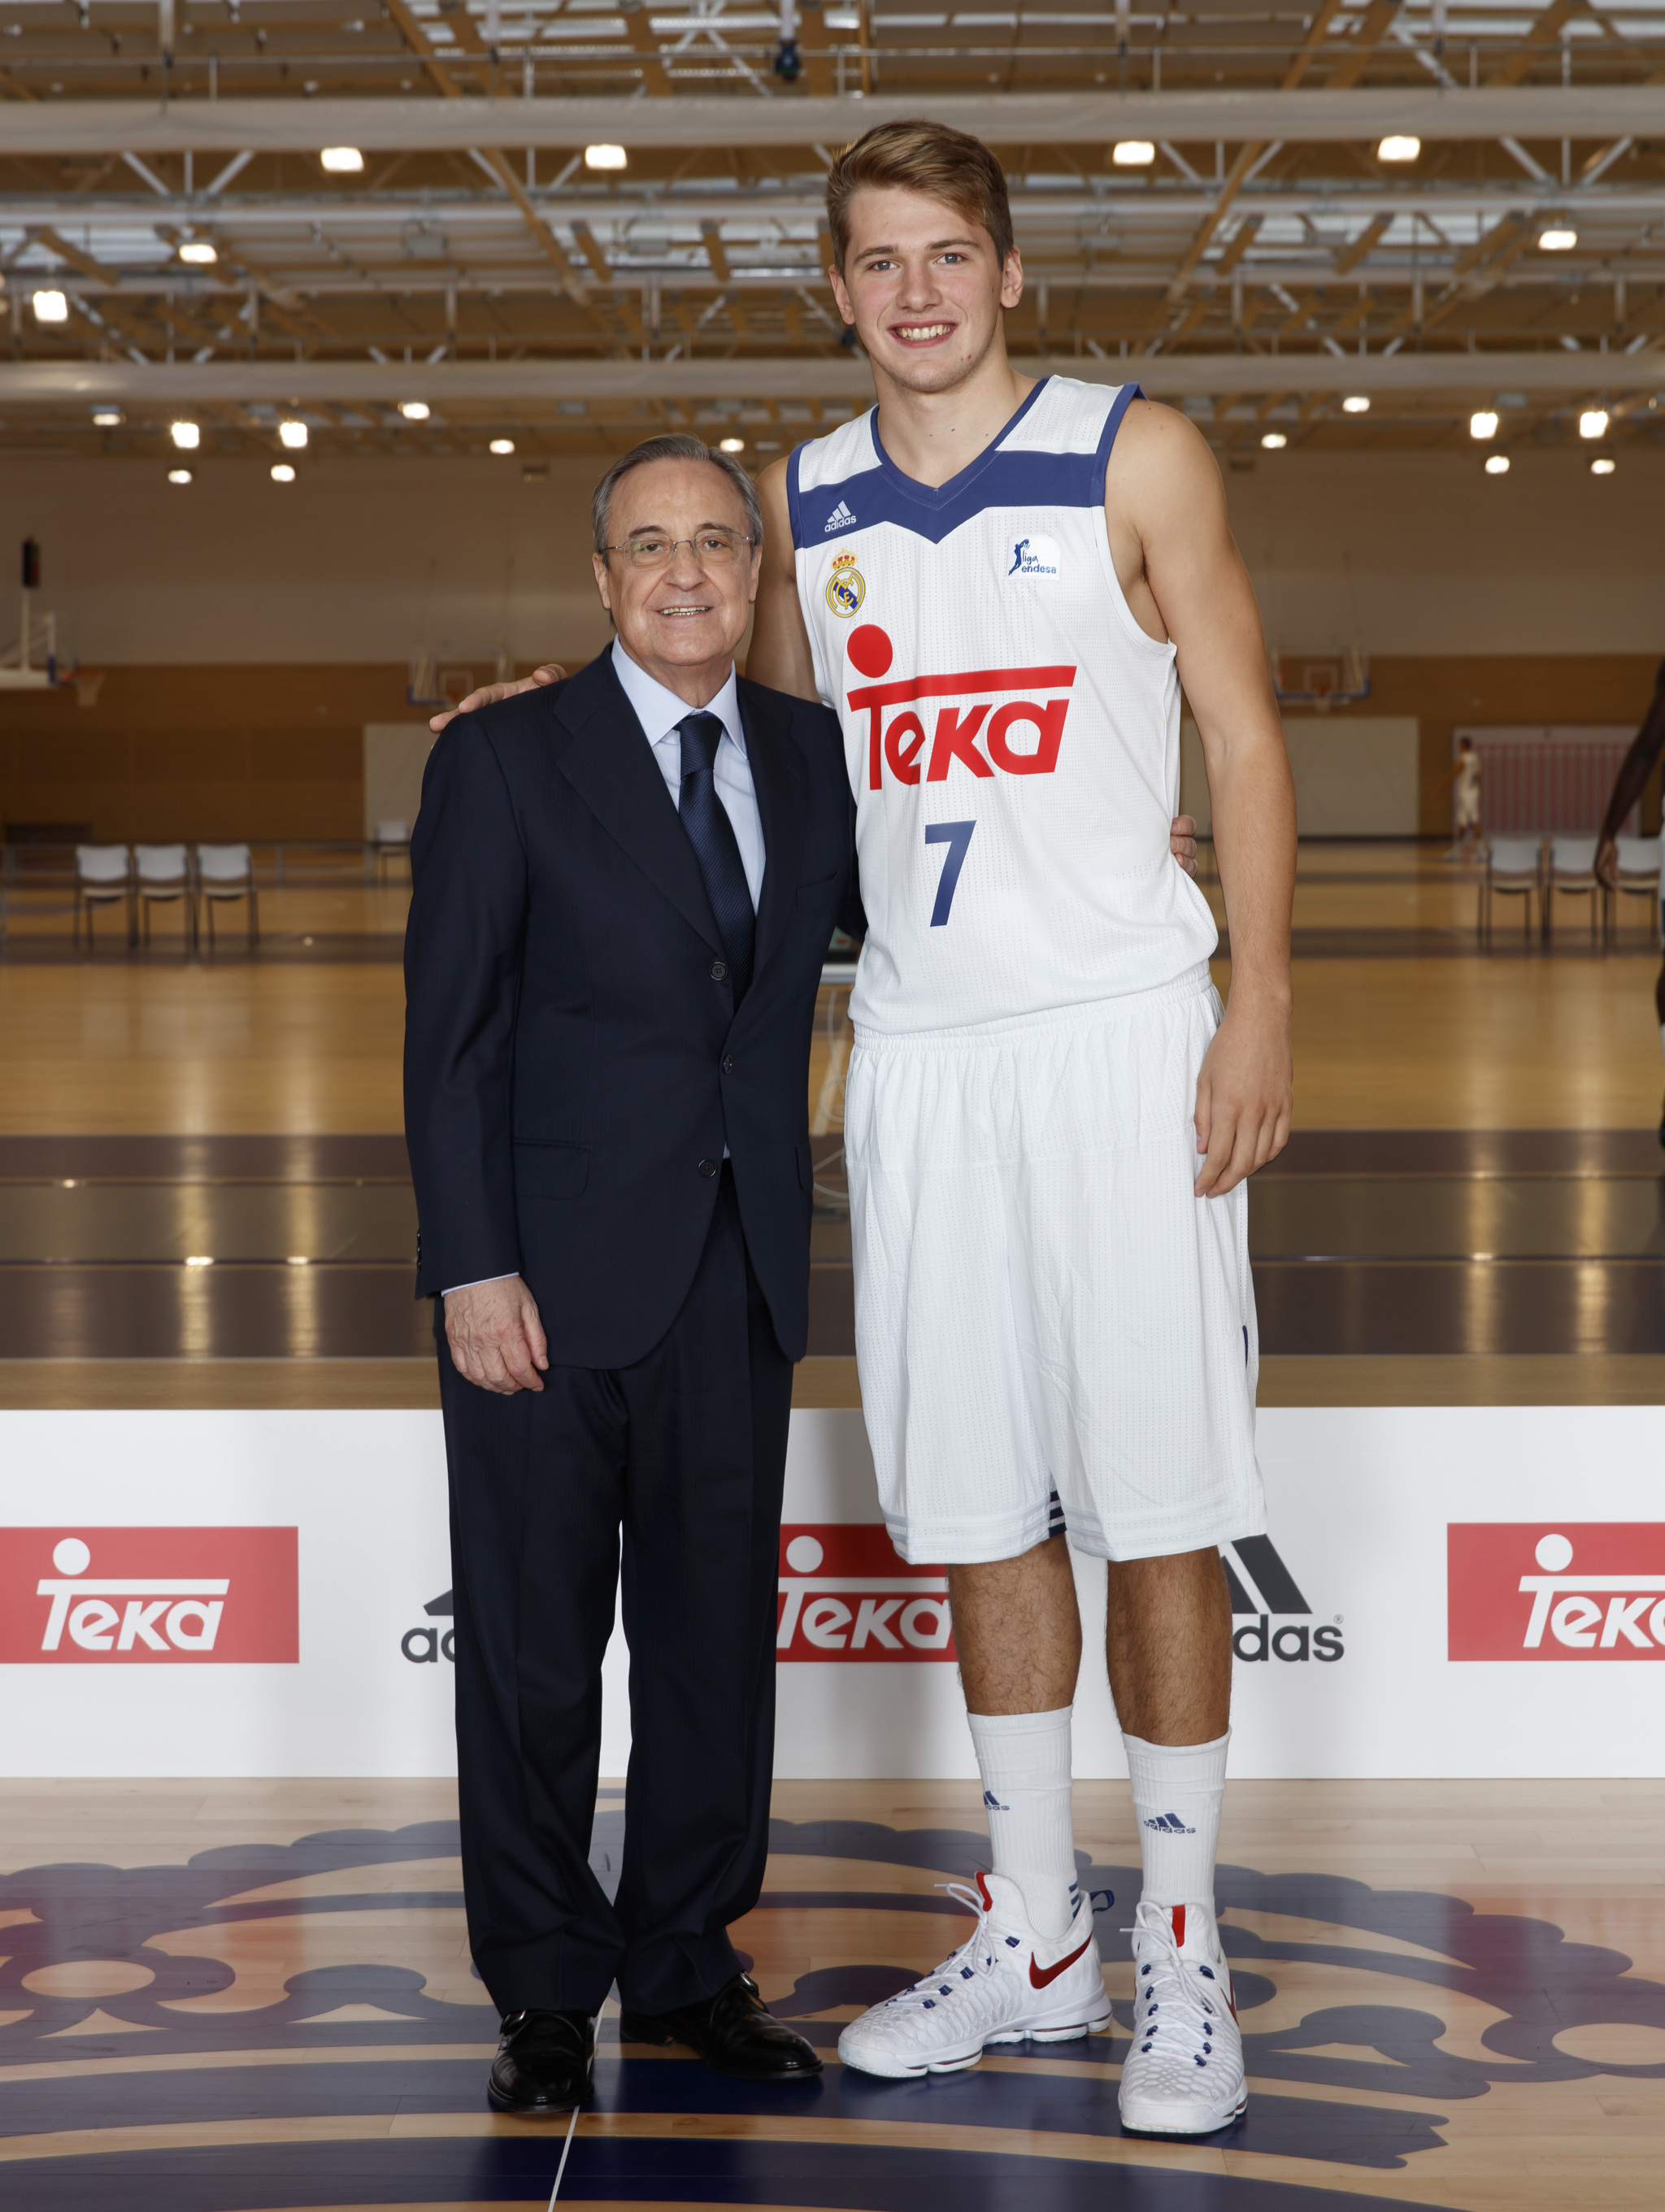 ¿Cuánto mide Luka Doncic? - Real height 14743478739237